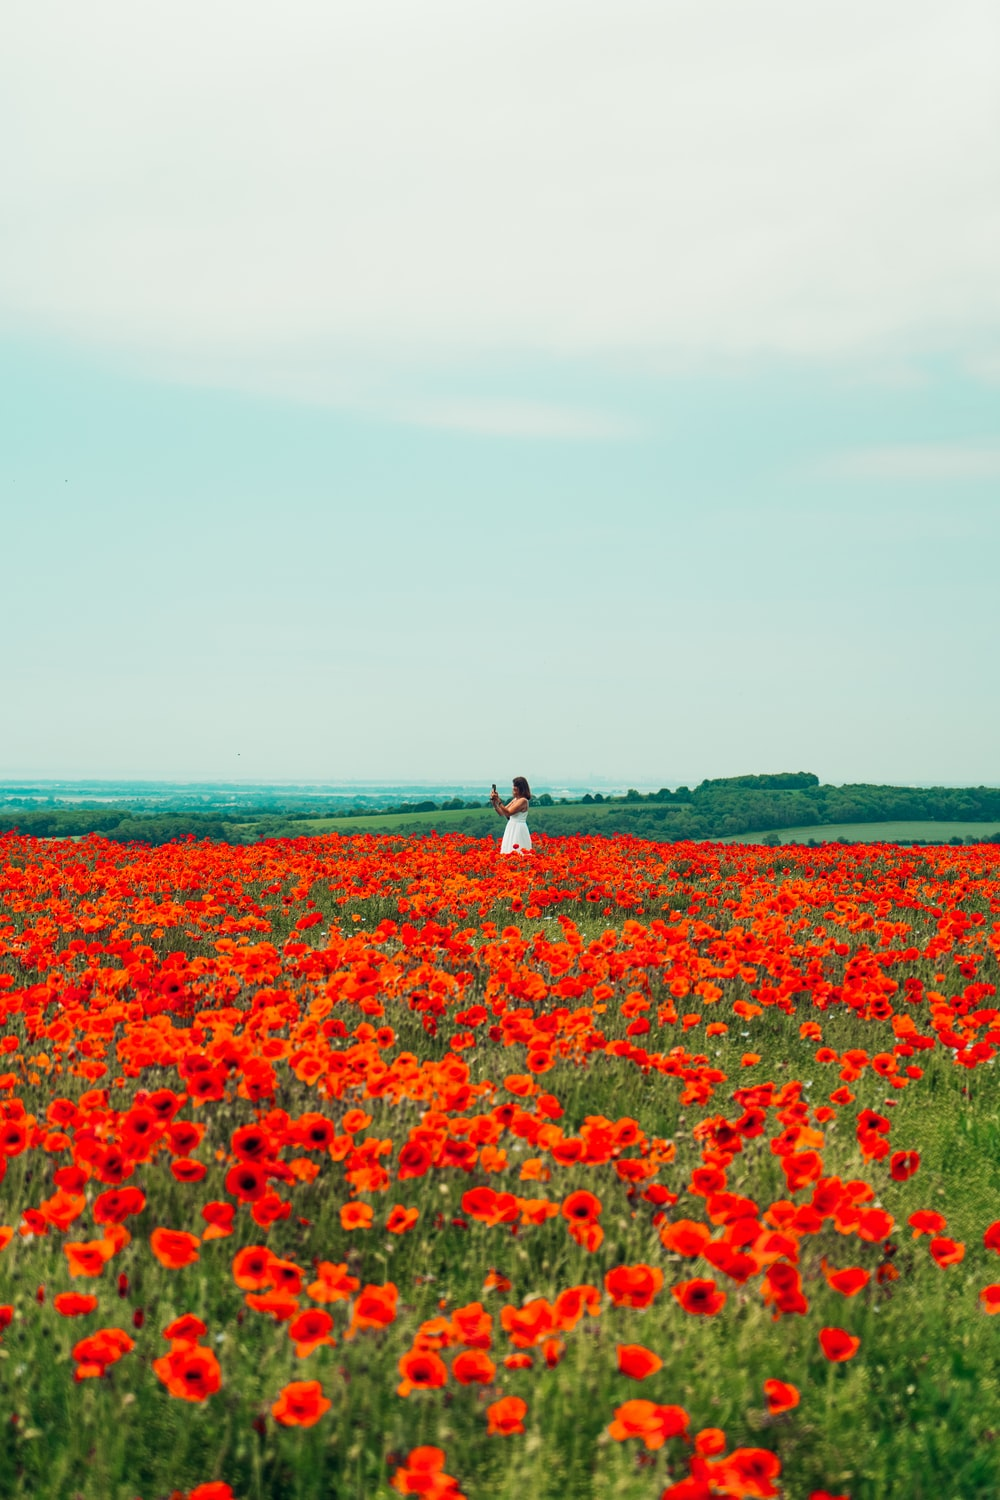 woman in white dress walking on red flower field during daytime